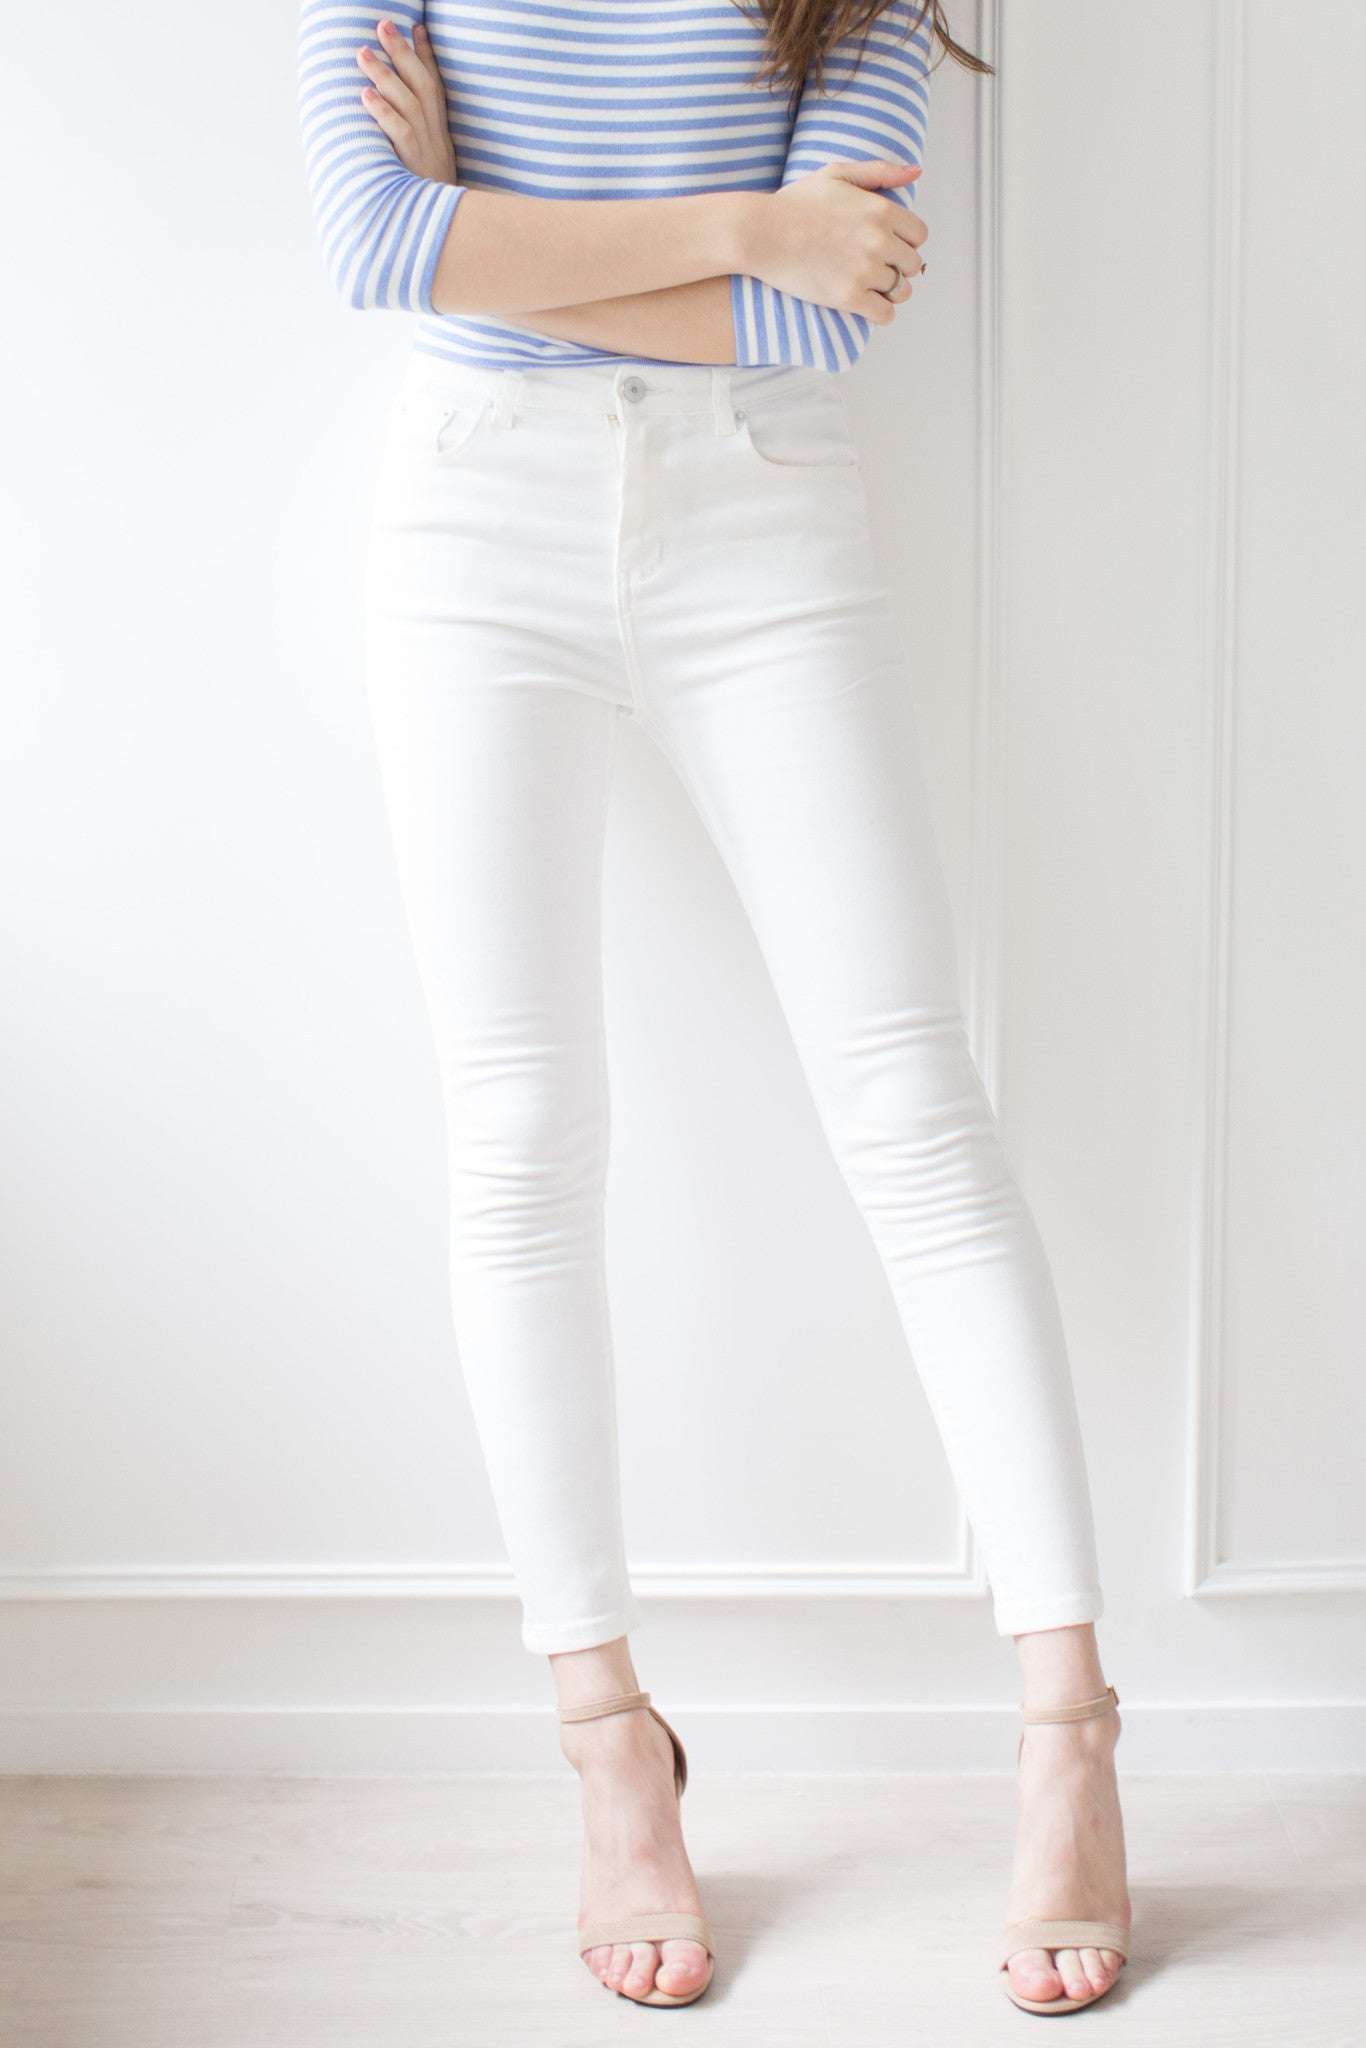 Enjoy free shipping and easy returns every day at Kohl's. Find great deals on Womens Petite Skinny Jeans at Kohl's today!